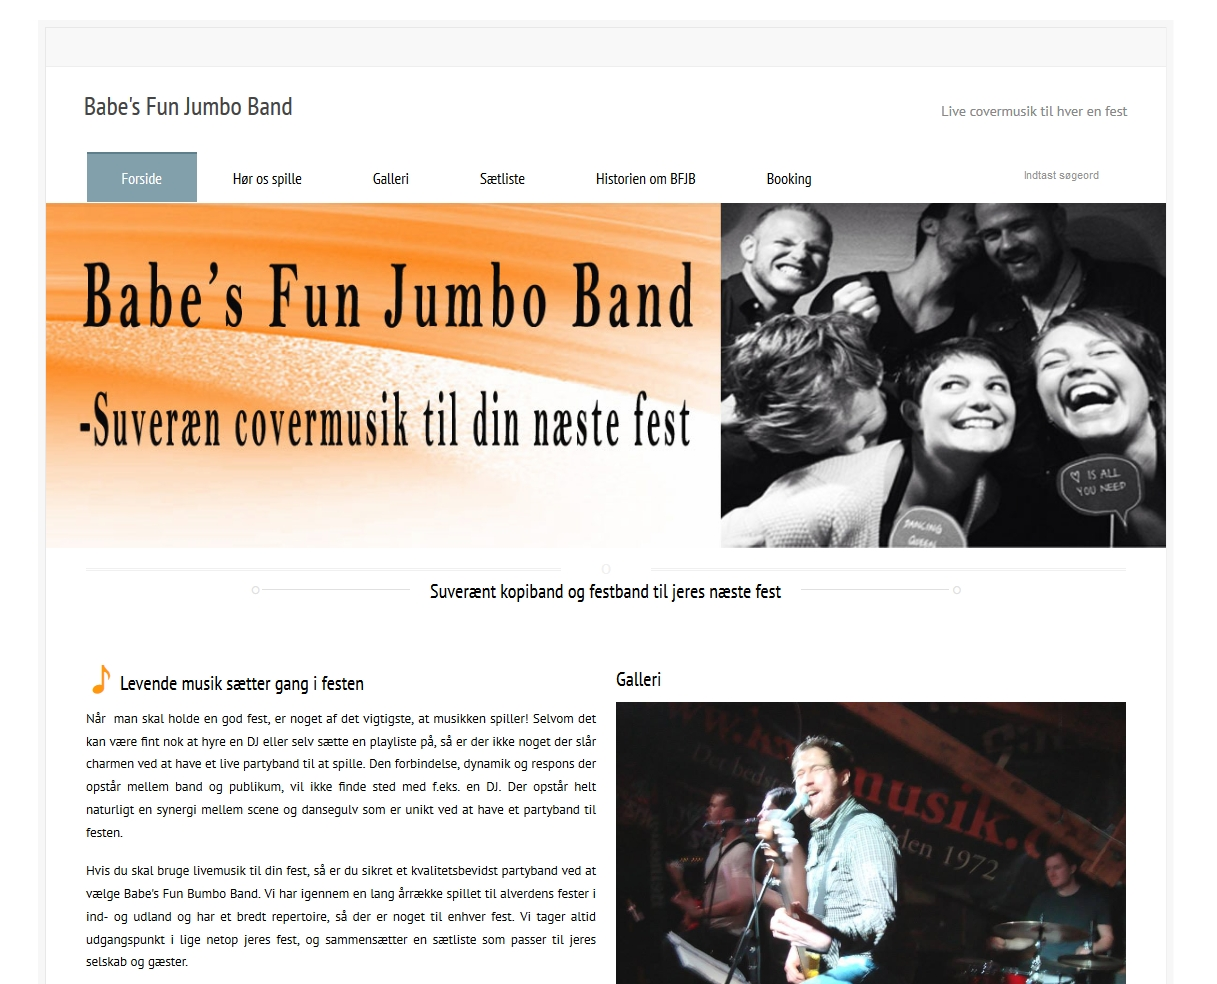 Forside for Babe's Fun Jumbo Band